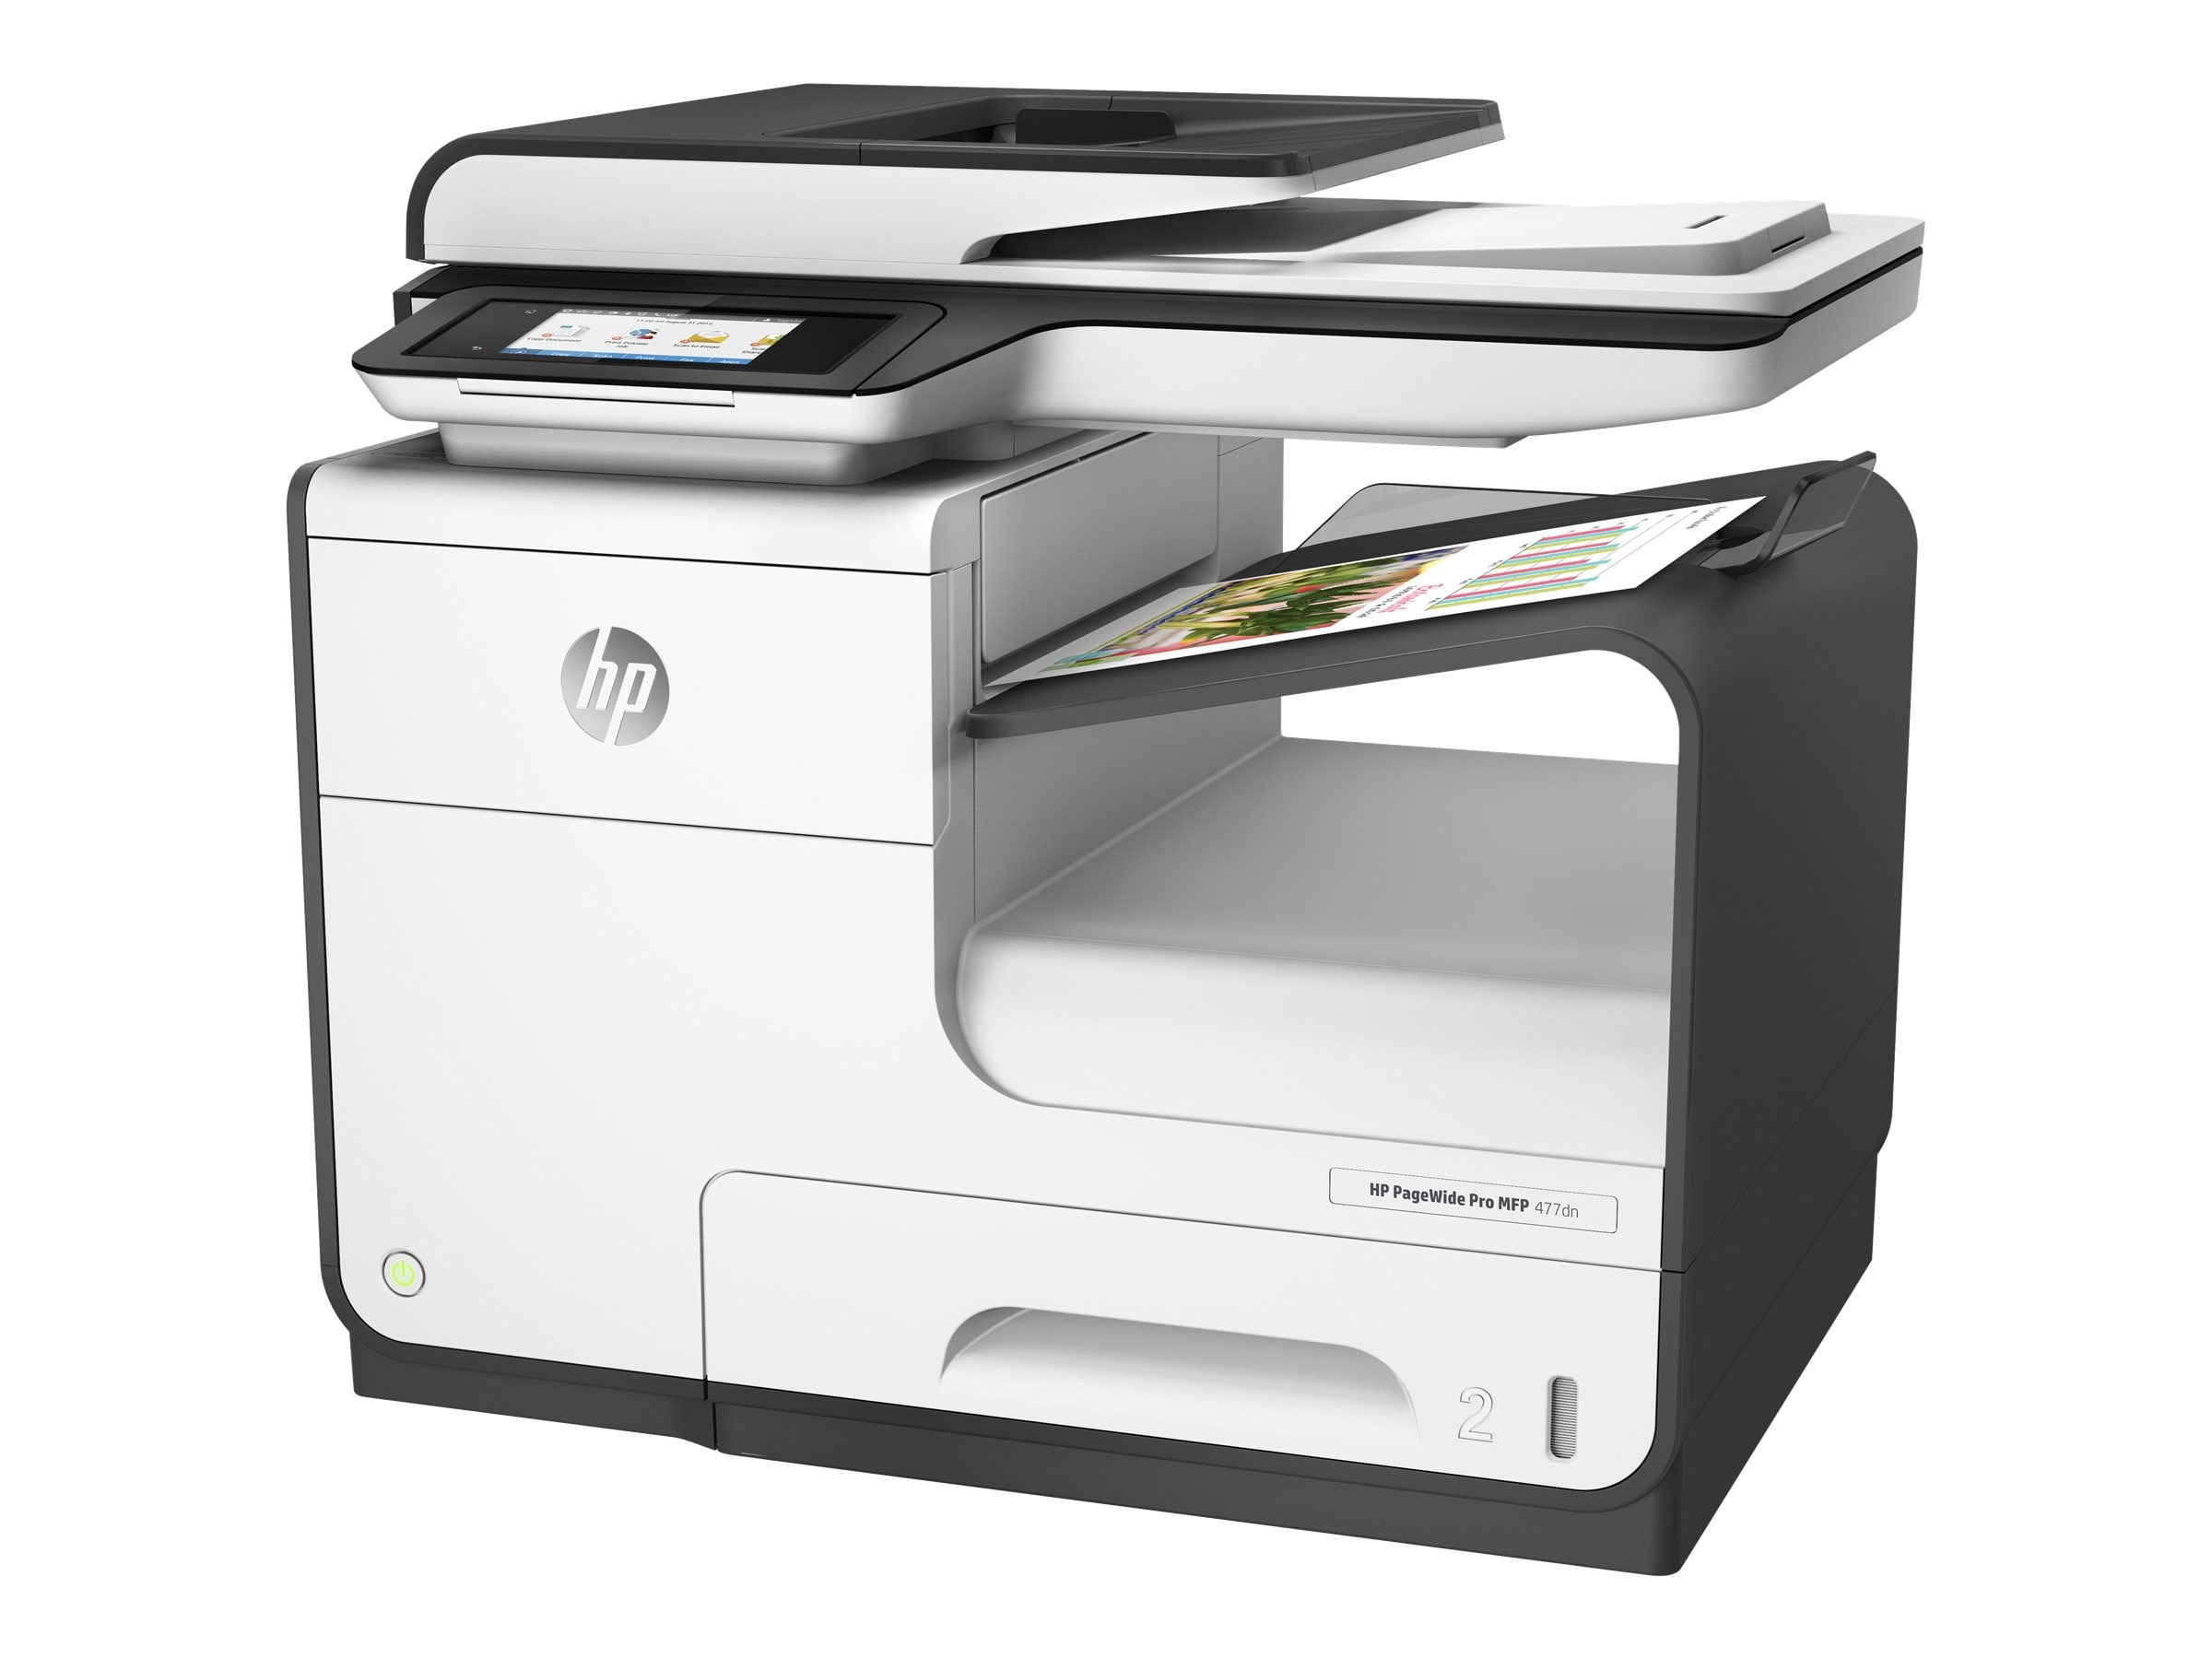 HP PageWide Pro 477dn MFP